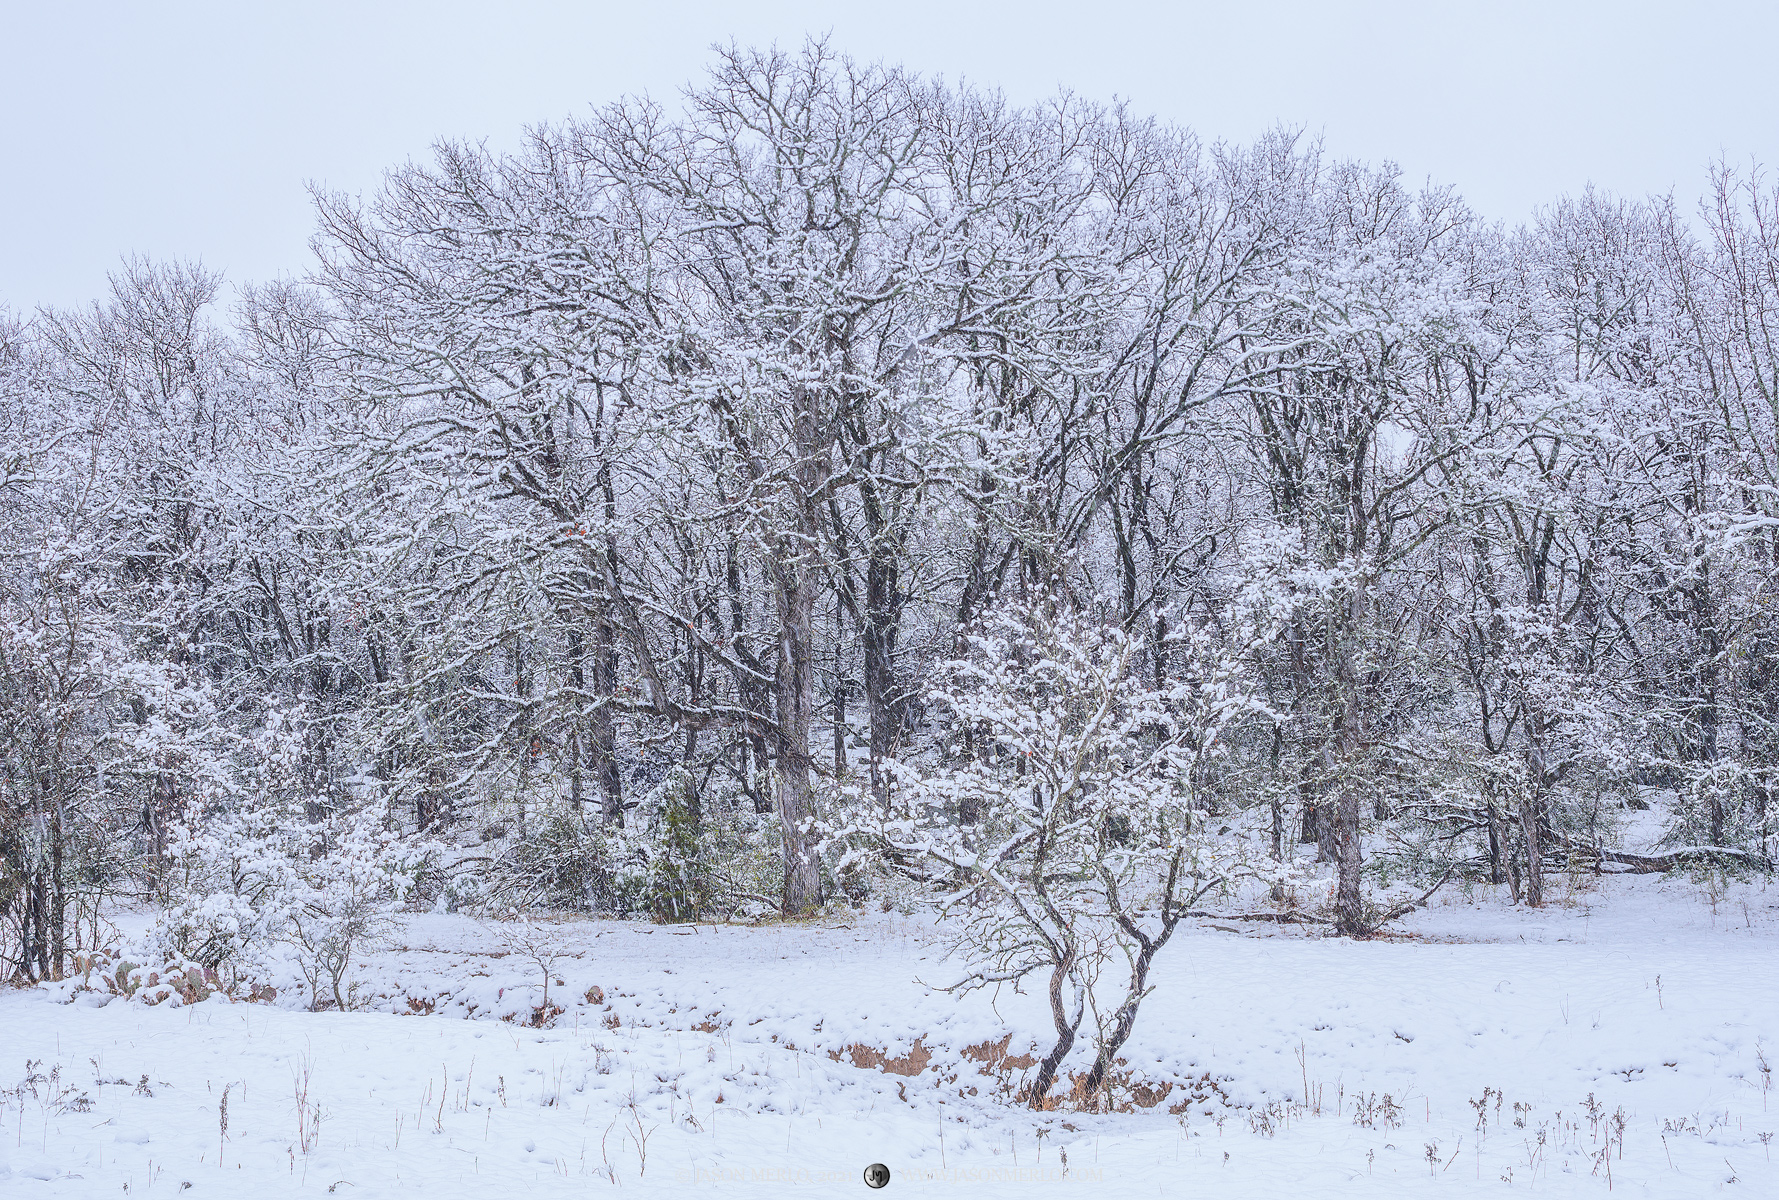 Cedar elm trees (Ulmus crassifolia)covered in snow after a rare snowstorm in San Saba County in the Texas Cross Timbers.